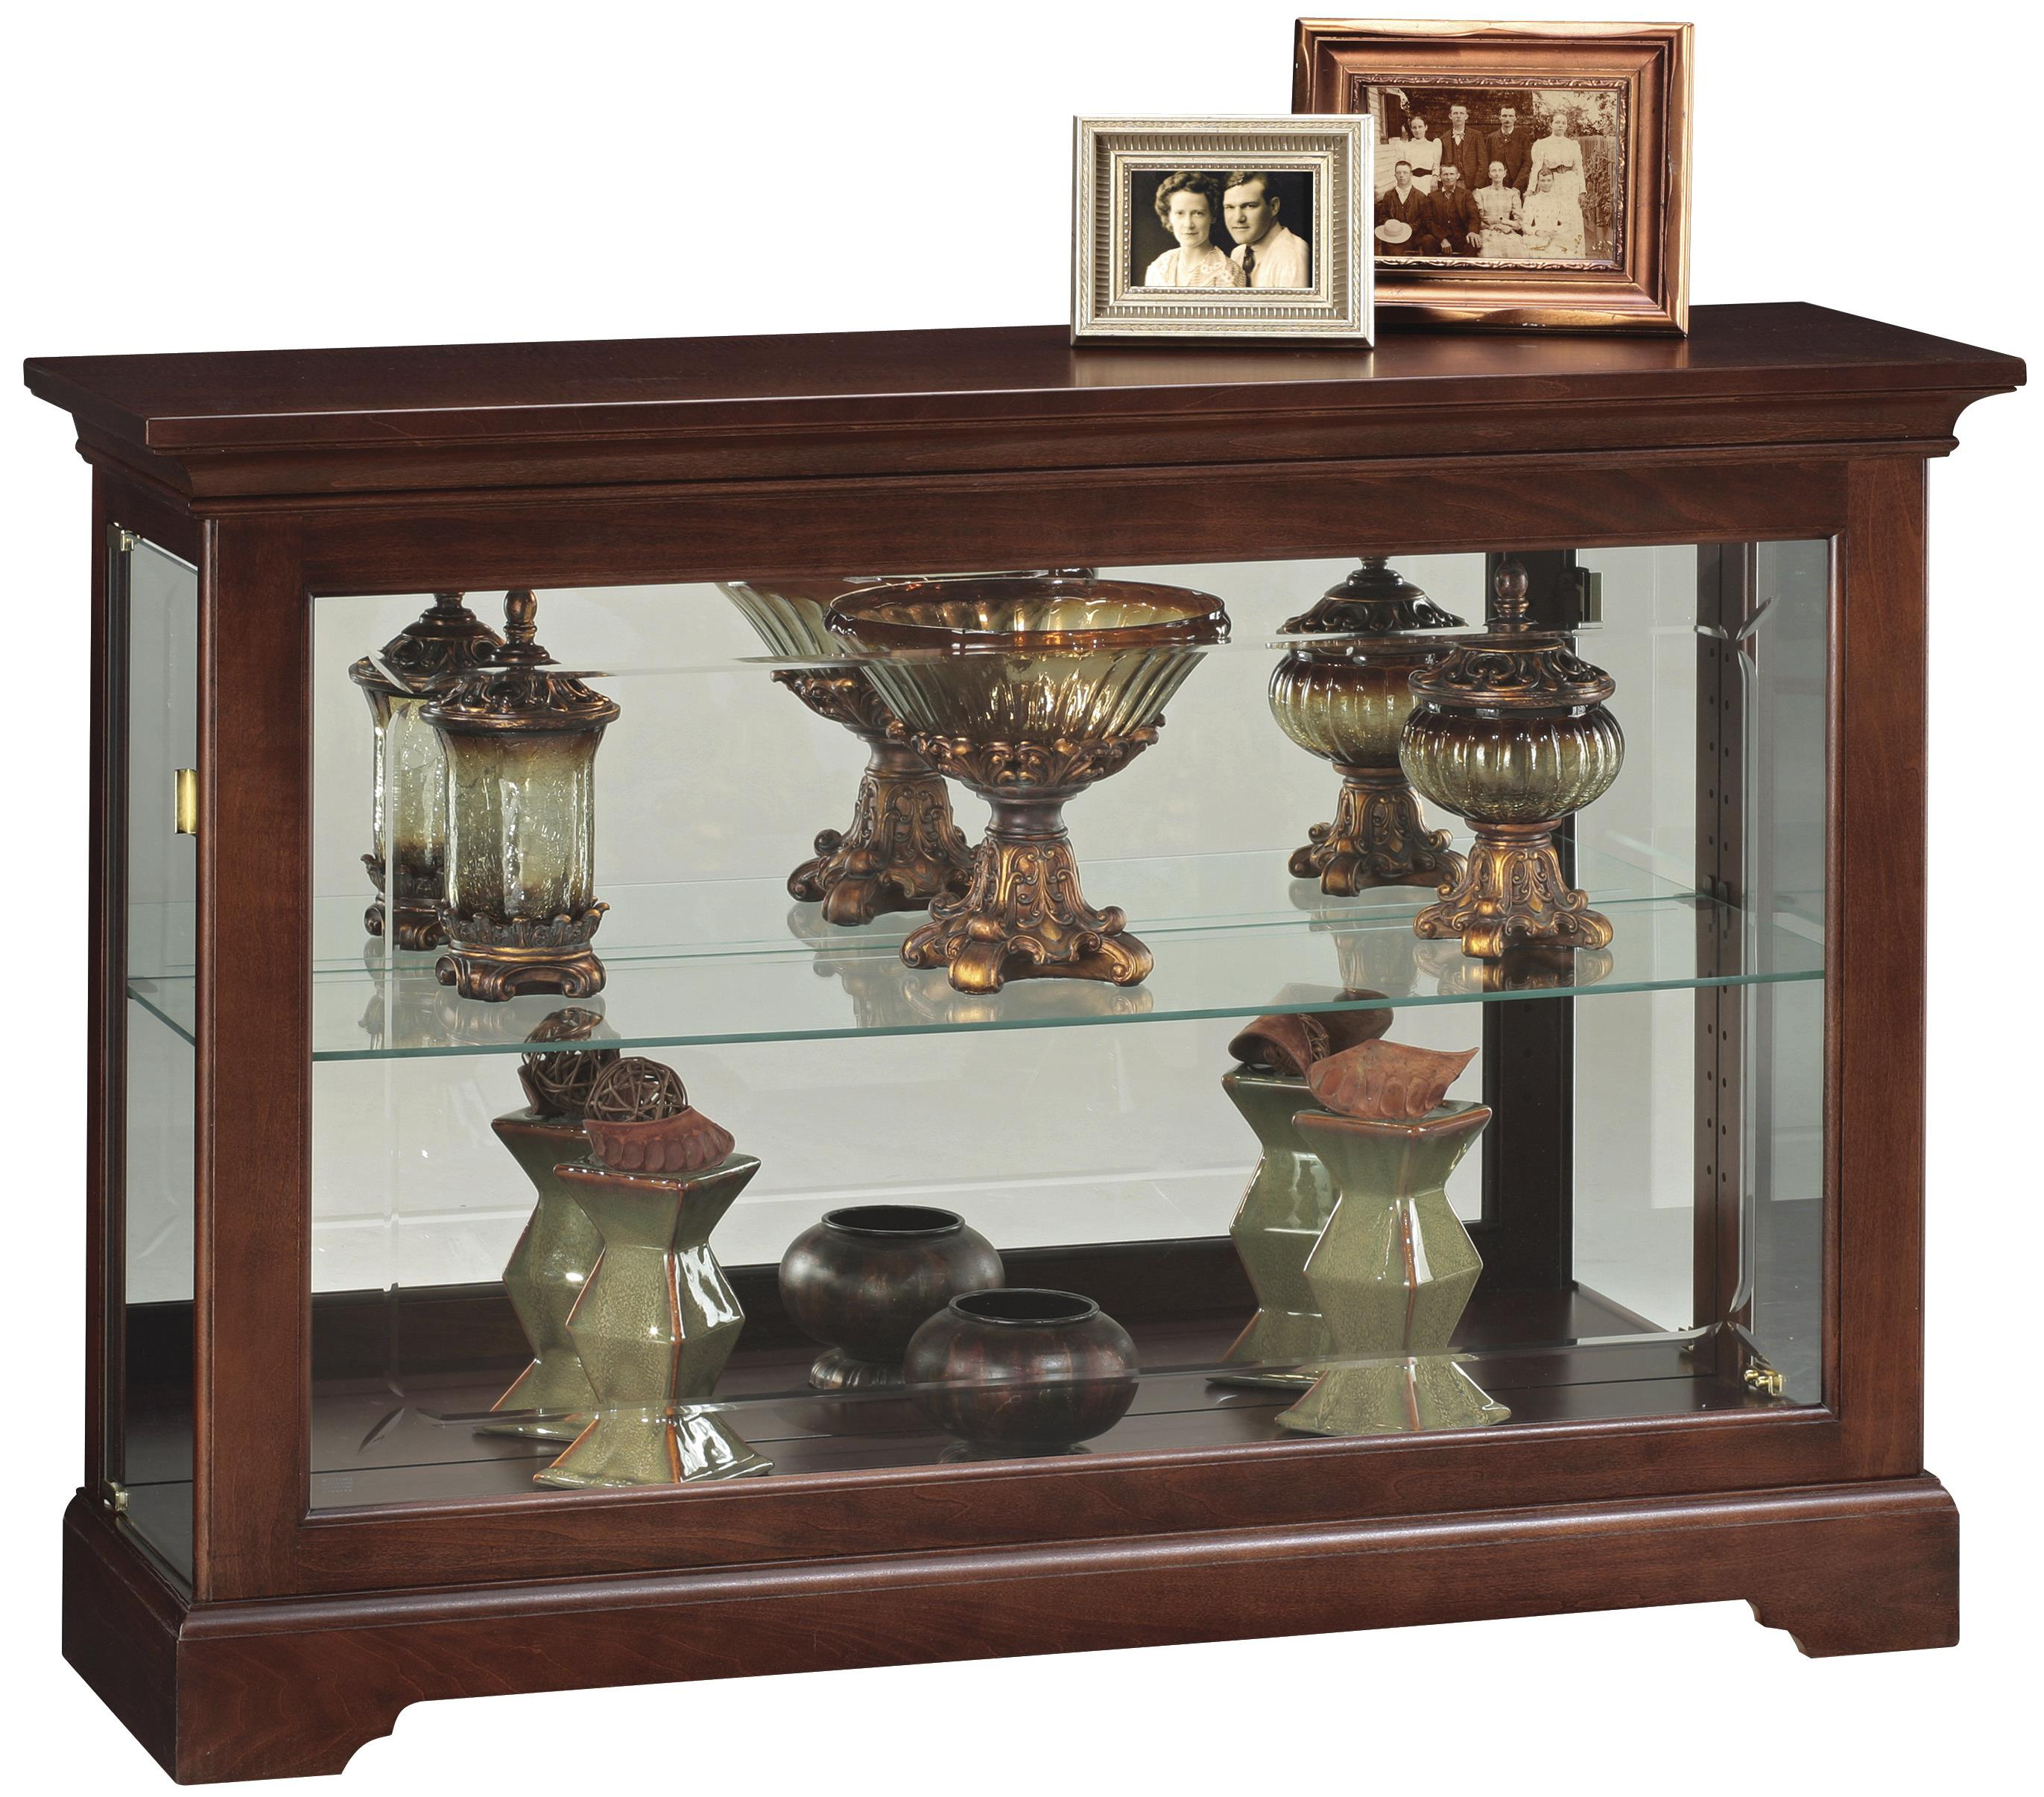 Howard Miller Cabinets Curio Cabinet Item Number 680 533